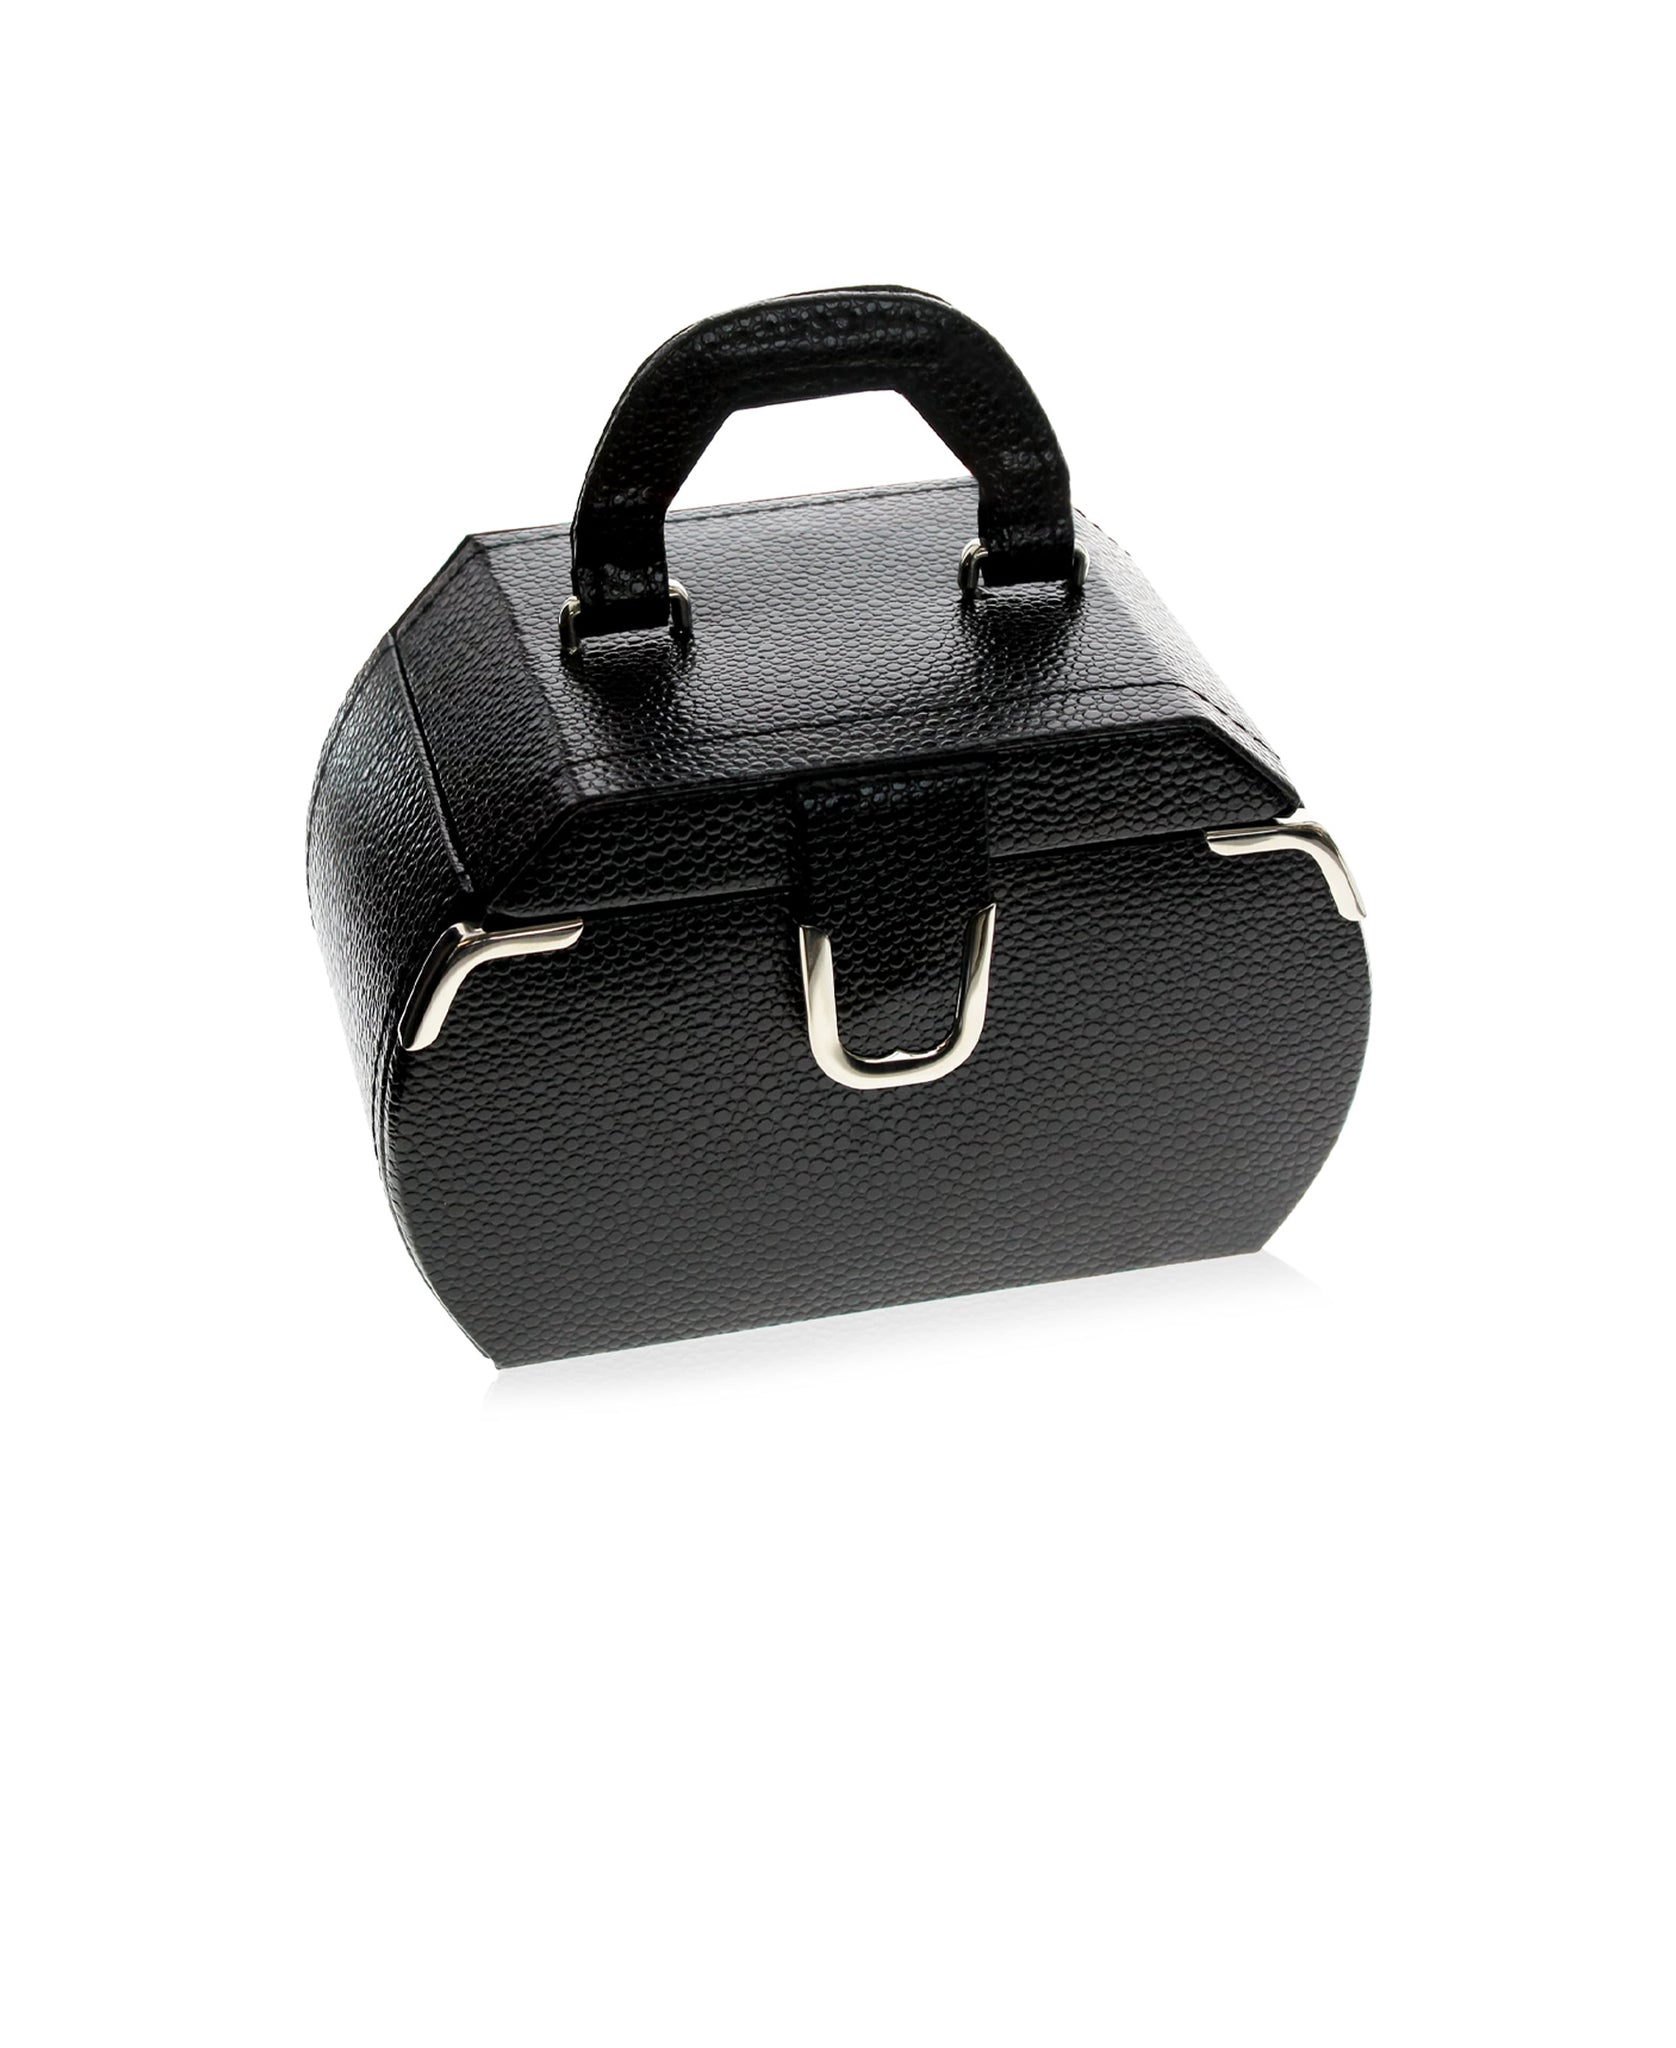 Black Miniature Rounded Jewelry Case - Rhona Sutton Jewellery